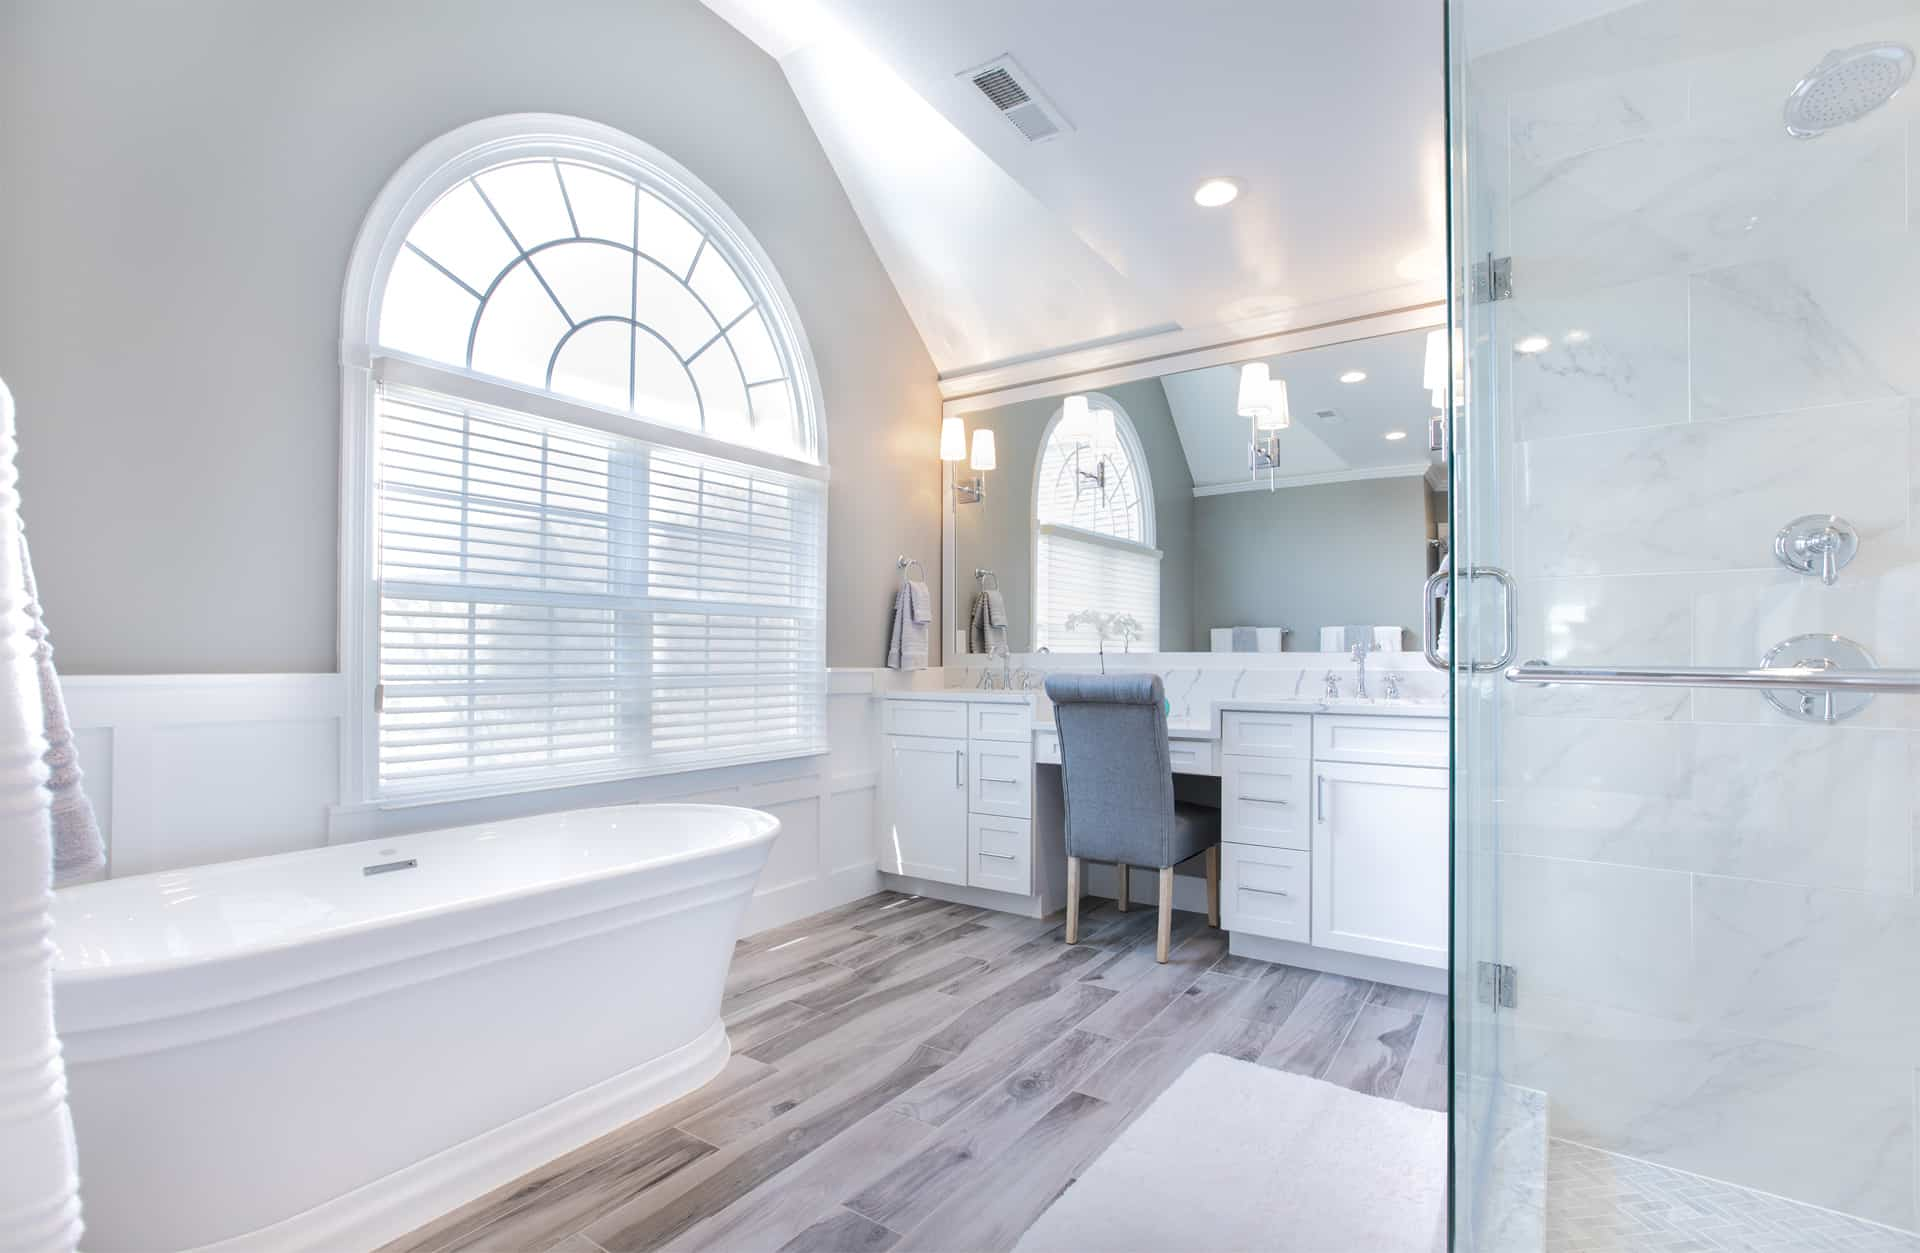 bathroom remodeling cost Fairfax station